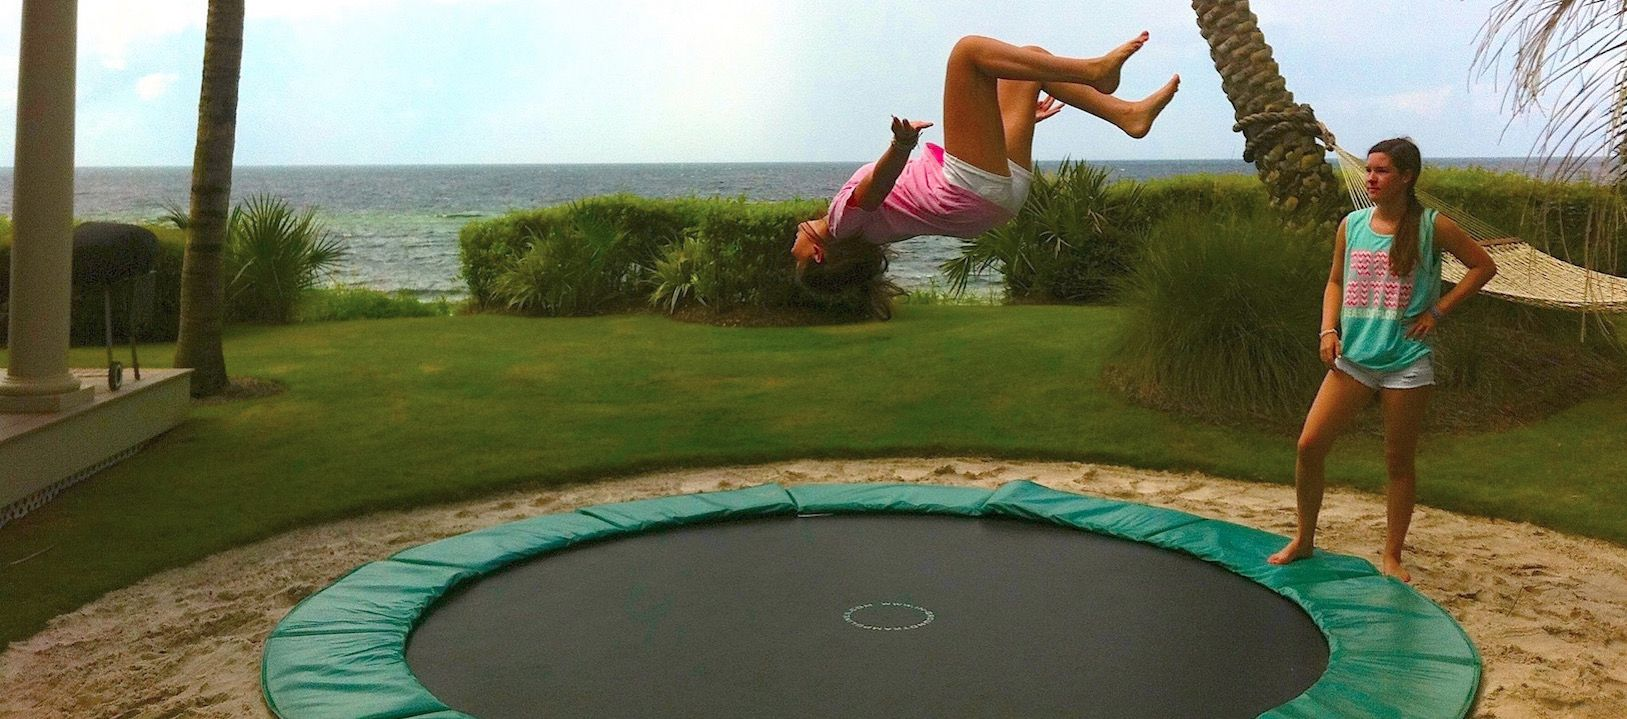 Create An In Ground Trampoline Plan Sand Pit